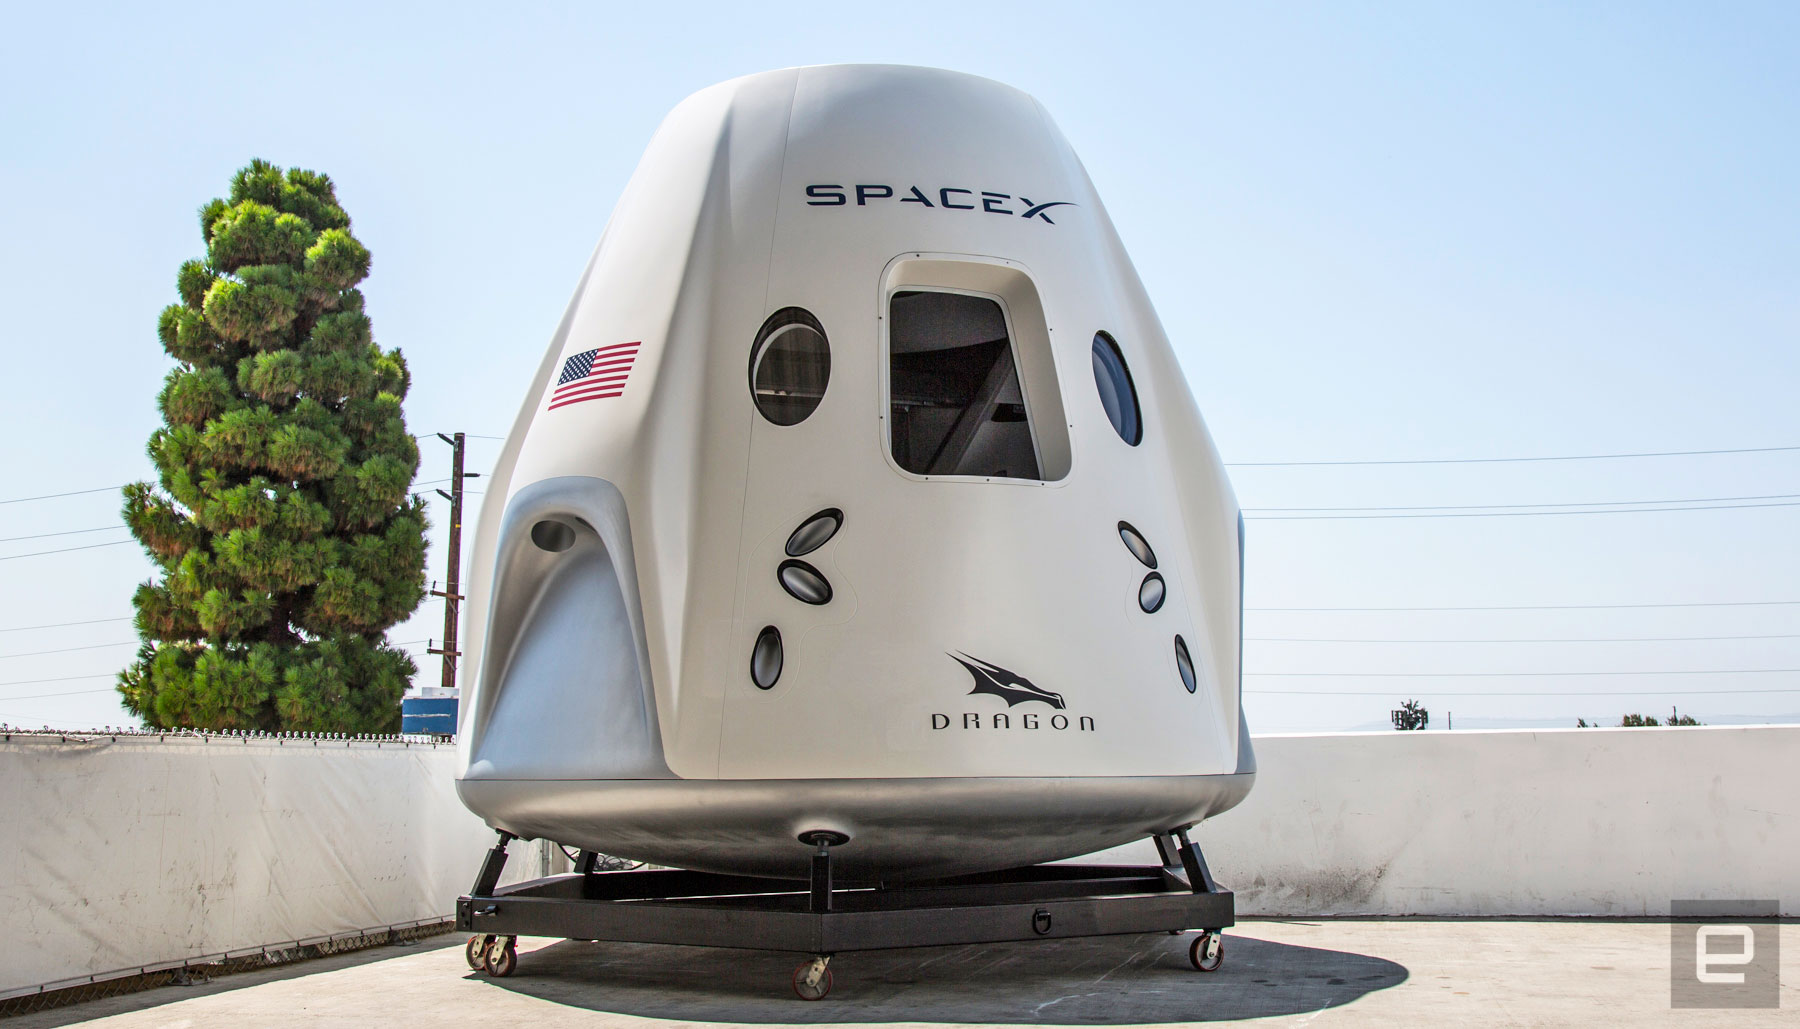 0813_spacex-2516-ed.jpg